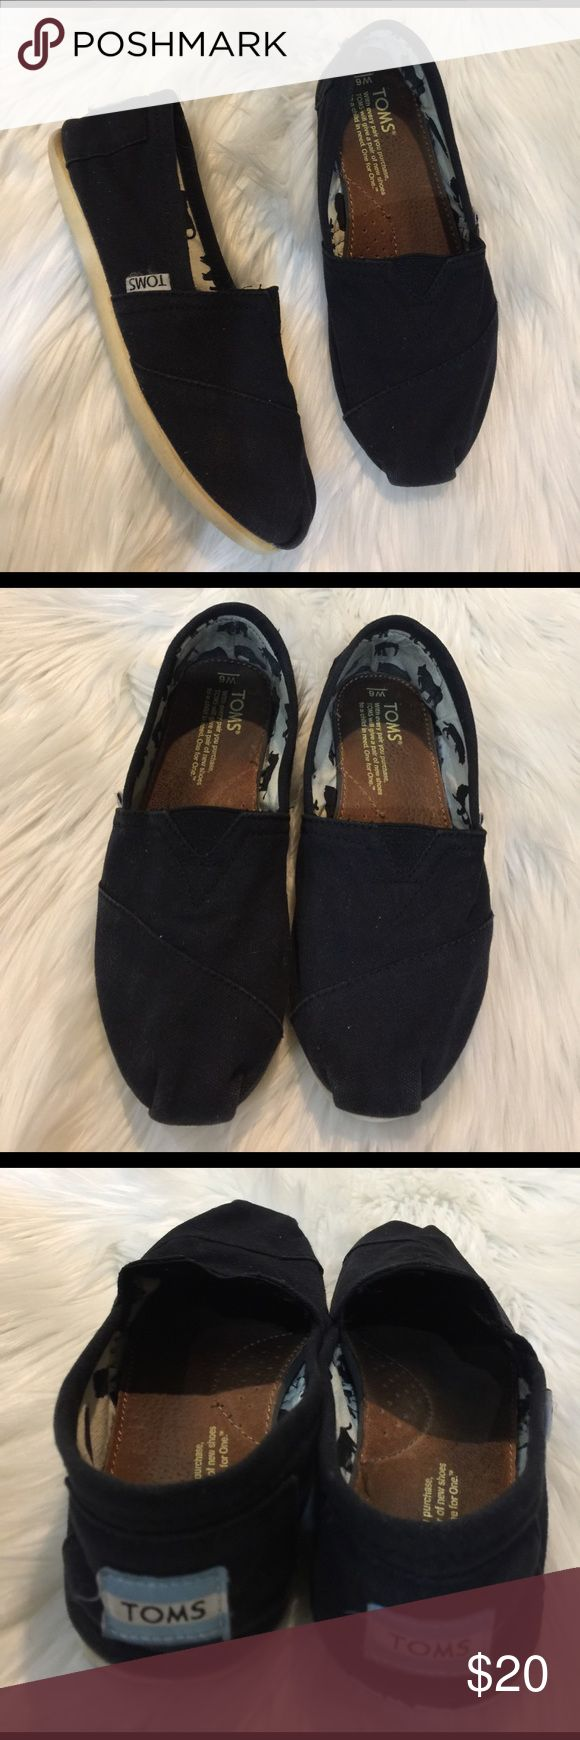 TOMS black canvas shoes Gently worn , size 6, no tips or holes 🌟REASONABLE OFFERS ACCEPTED 🌟 TOMS Shoes